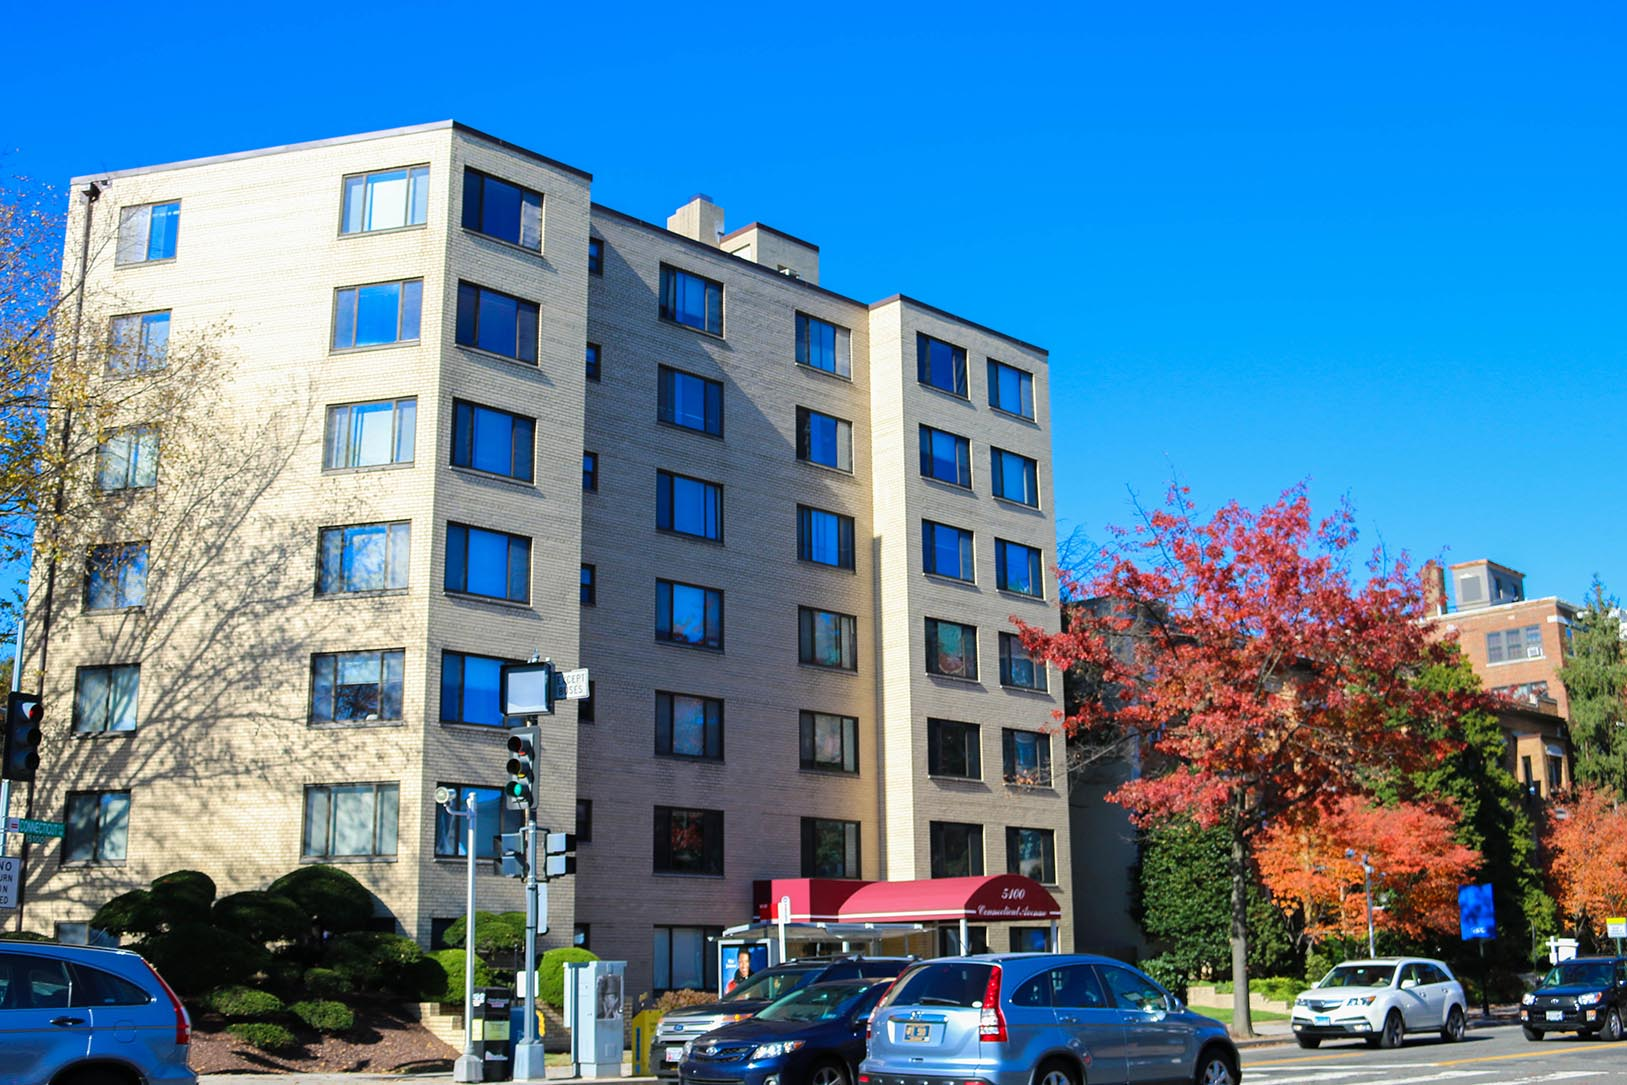 Apartment building in Chevy Chase, Washington, DC